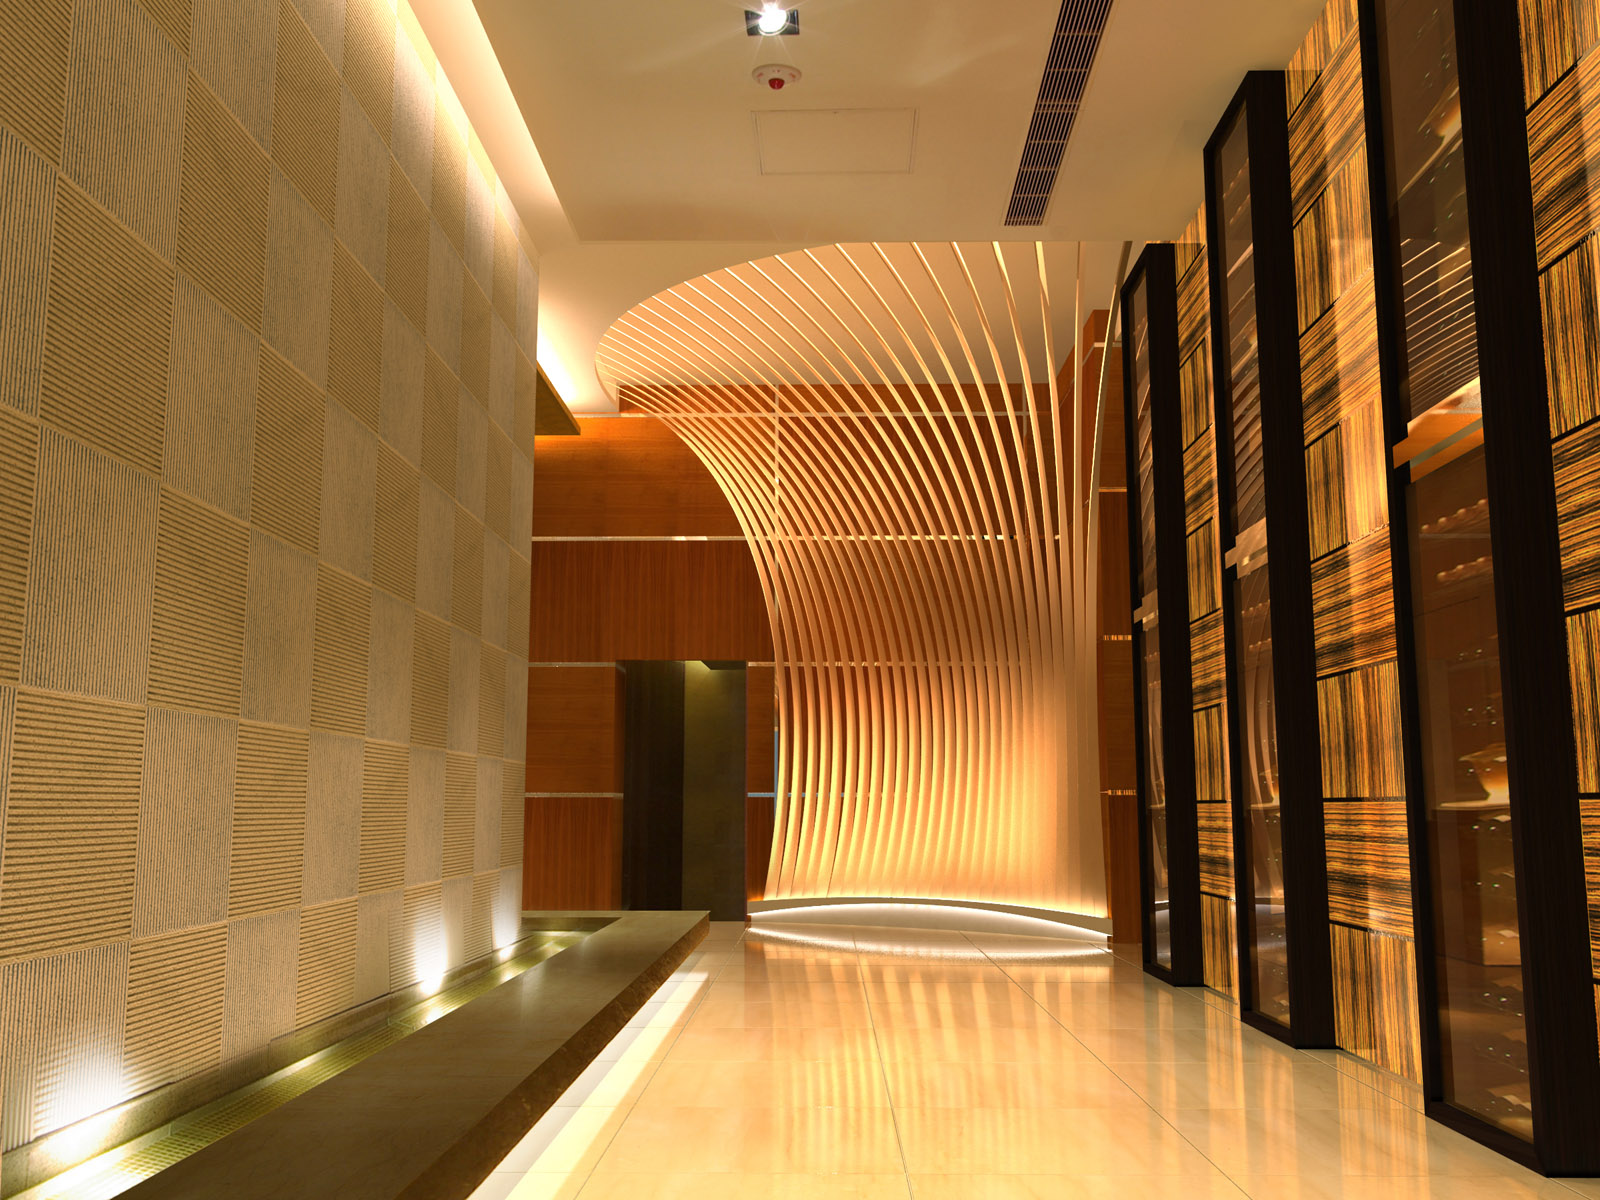 Corridor Design: Imagine These: Restaurant Interior Design